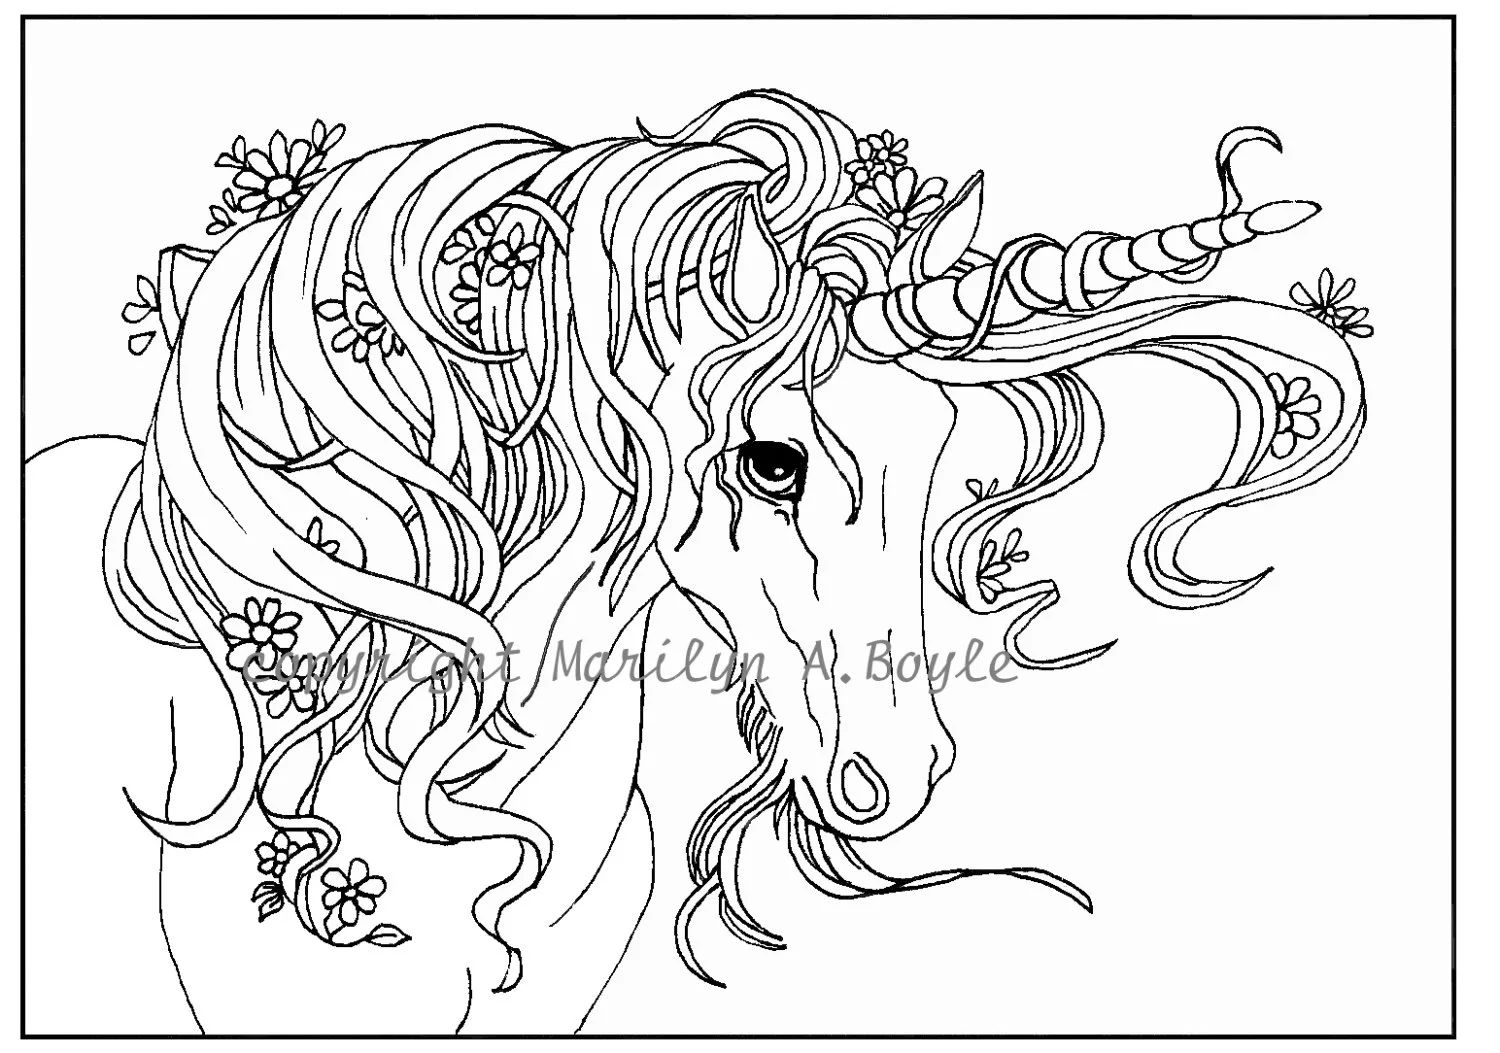 Adult coloring page digital download unicorn flowers garden fantasy easy for a child too